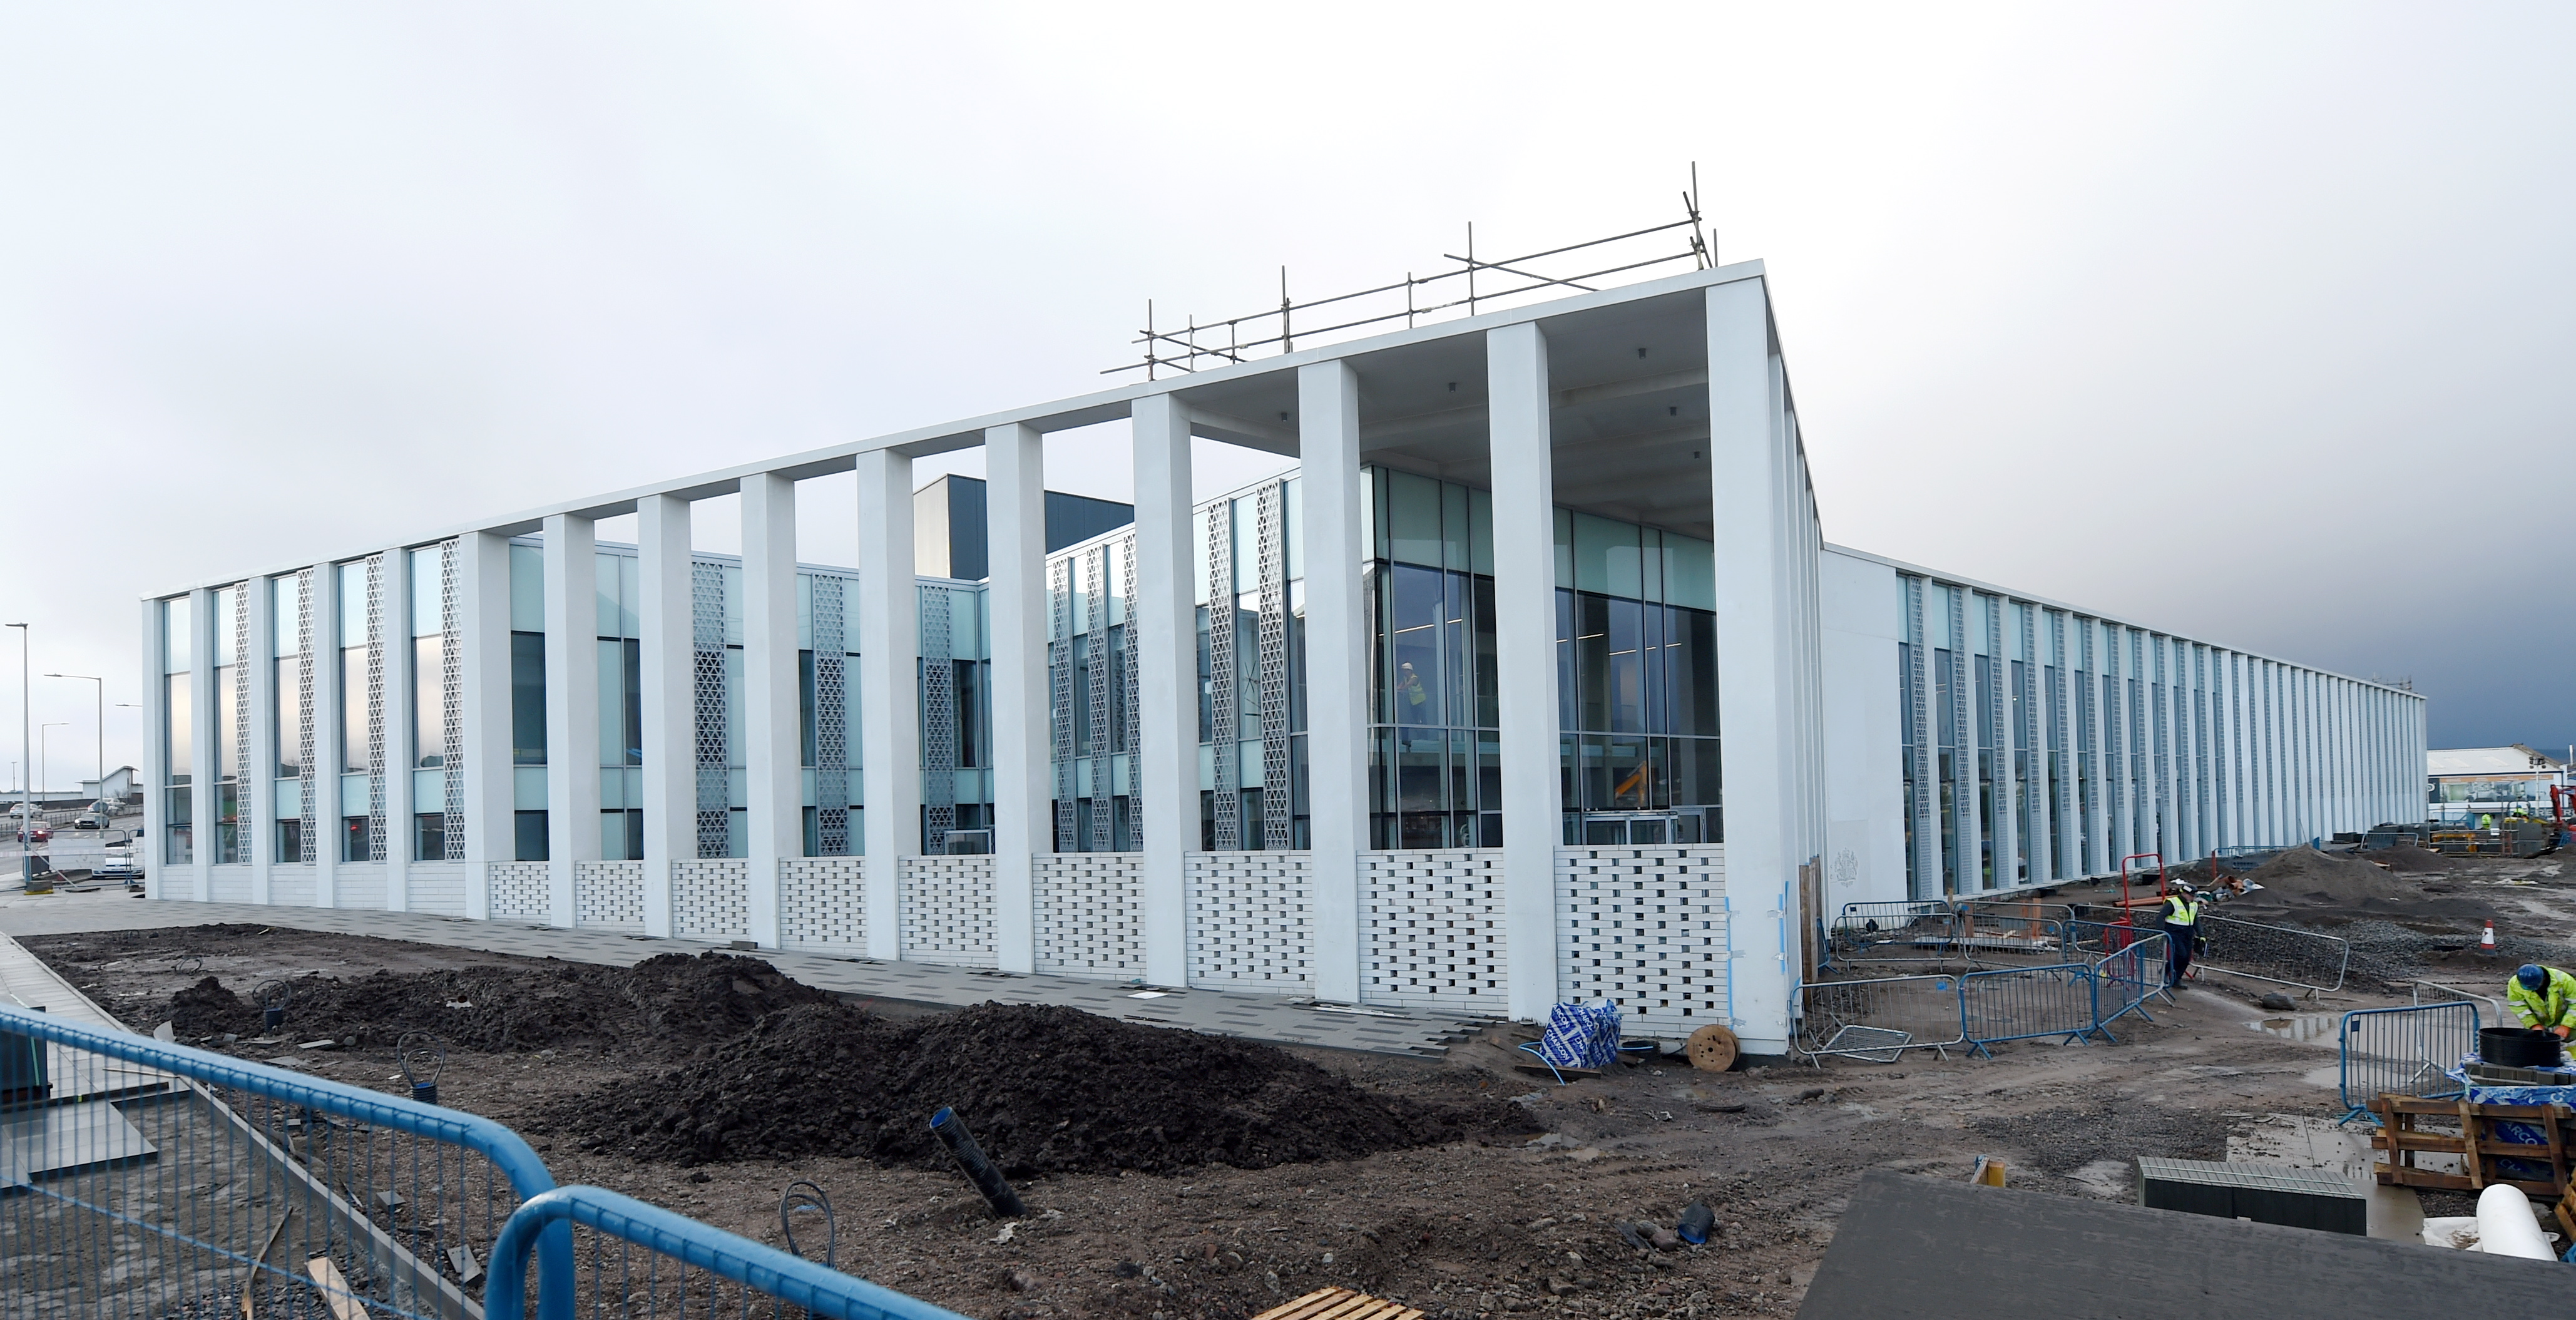 The new Inverness Justice Centre, currently under construction, has been given an opening date of March '30th 2020.